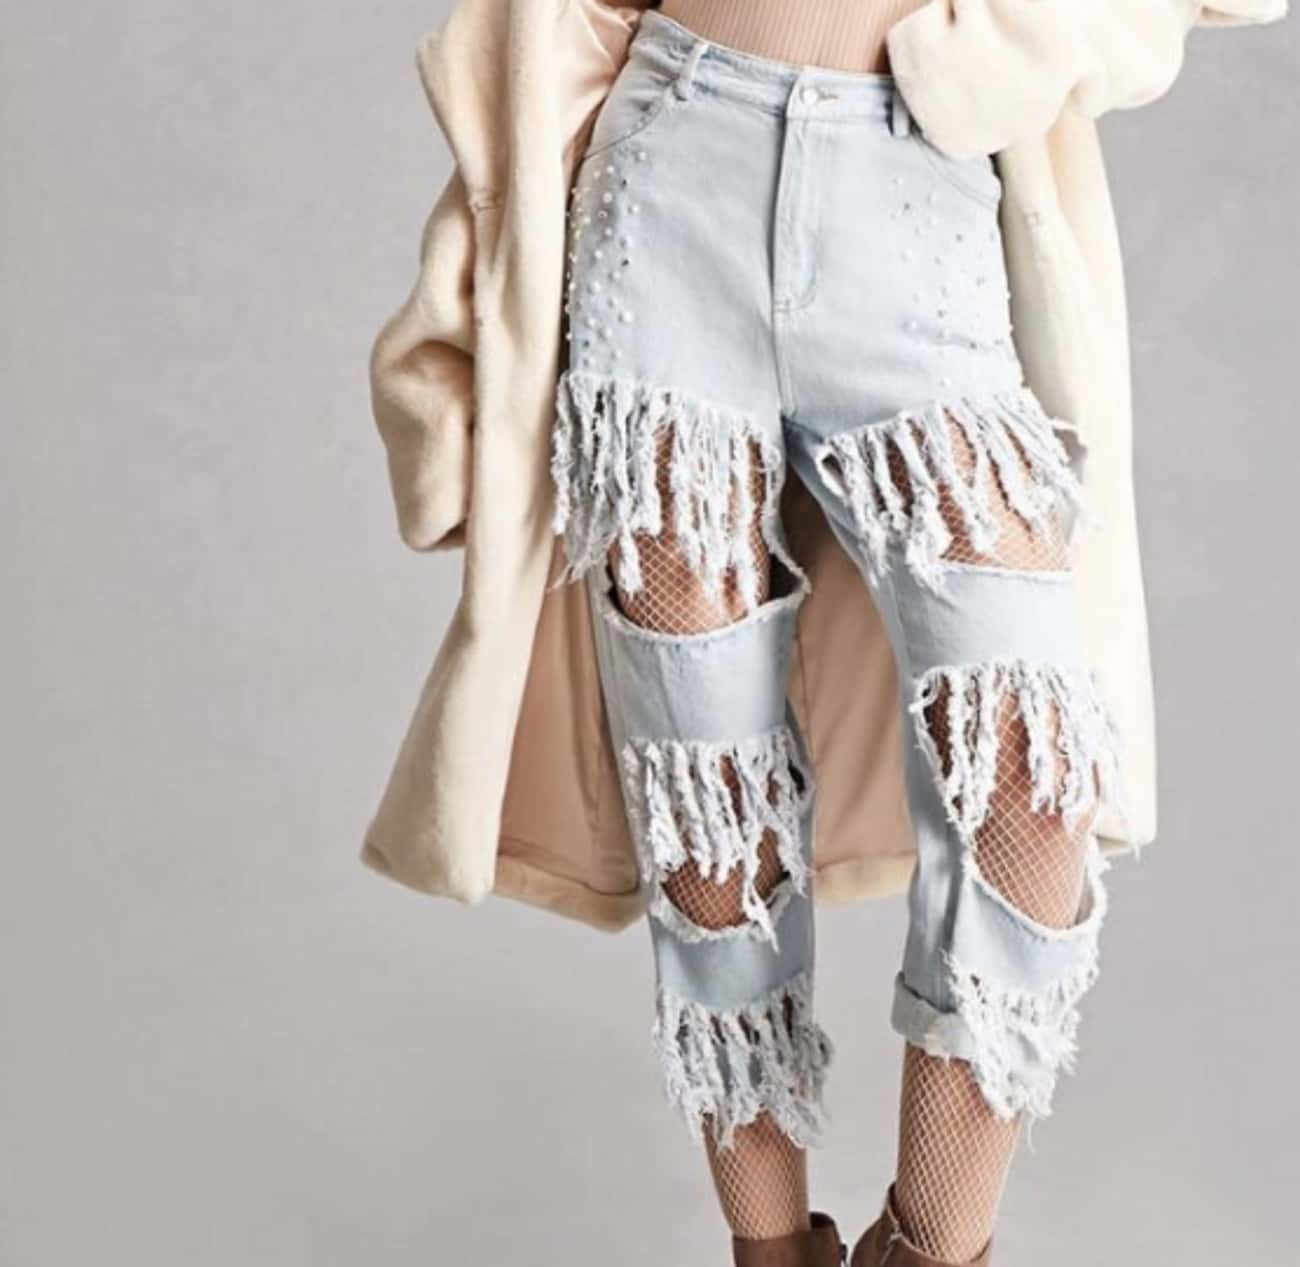 Jeans That Cover Every Trend Y is listed (or ranked) 4 on the list Times Forever 21 Took Things Way Too Far